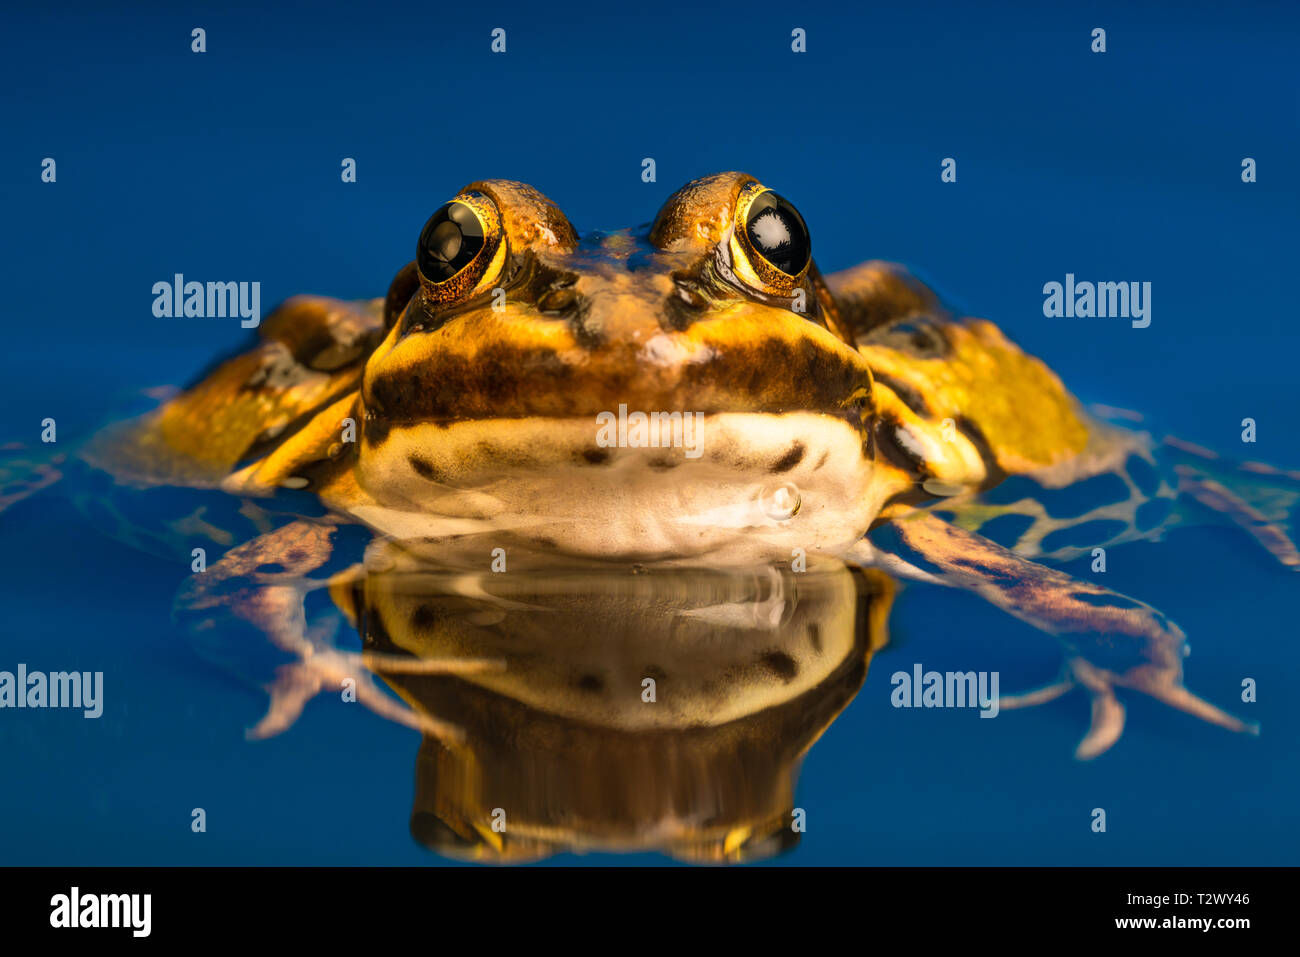 Common European frog (Pelophylax kl. esculentus), also known as the common water frog, green frog or edible frog. - Stock Image